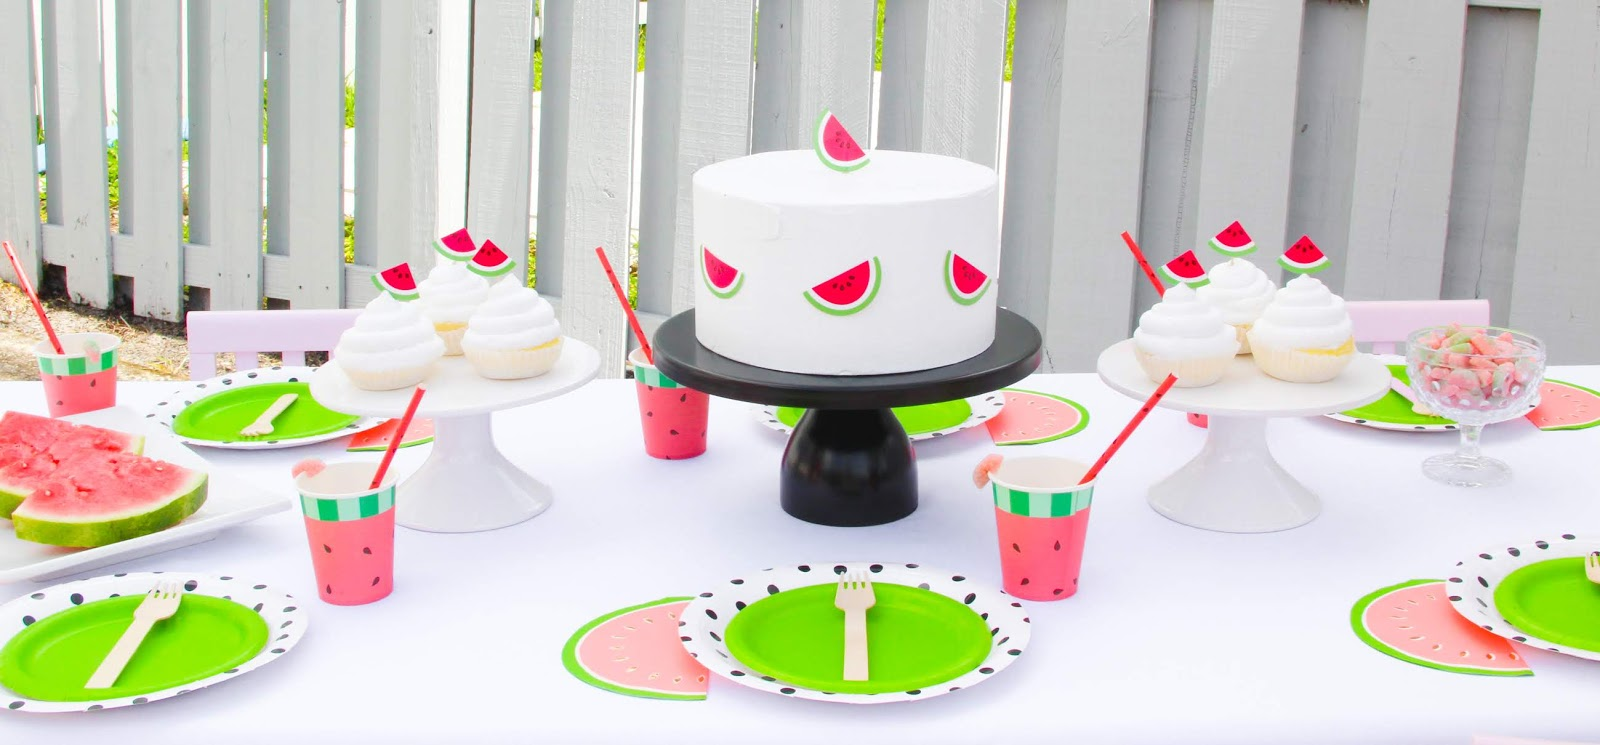 3 Steps to an Easy Summer Birthday Party by The Celebration Stylist